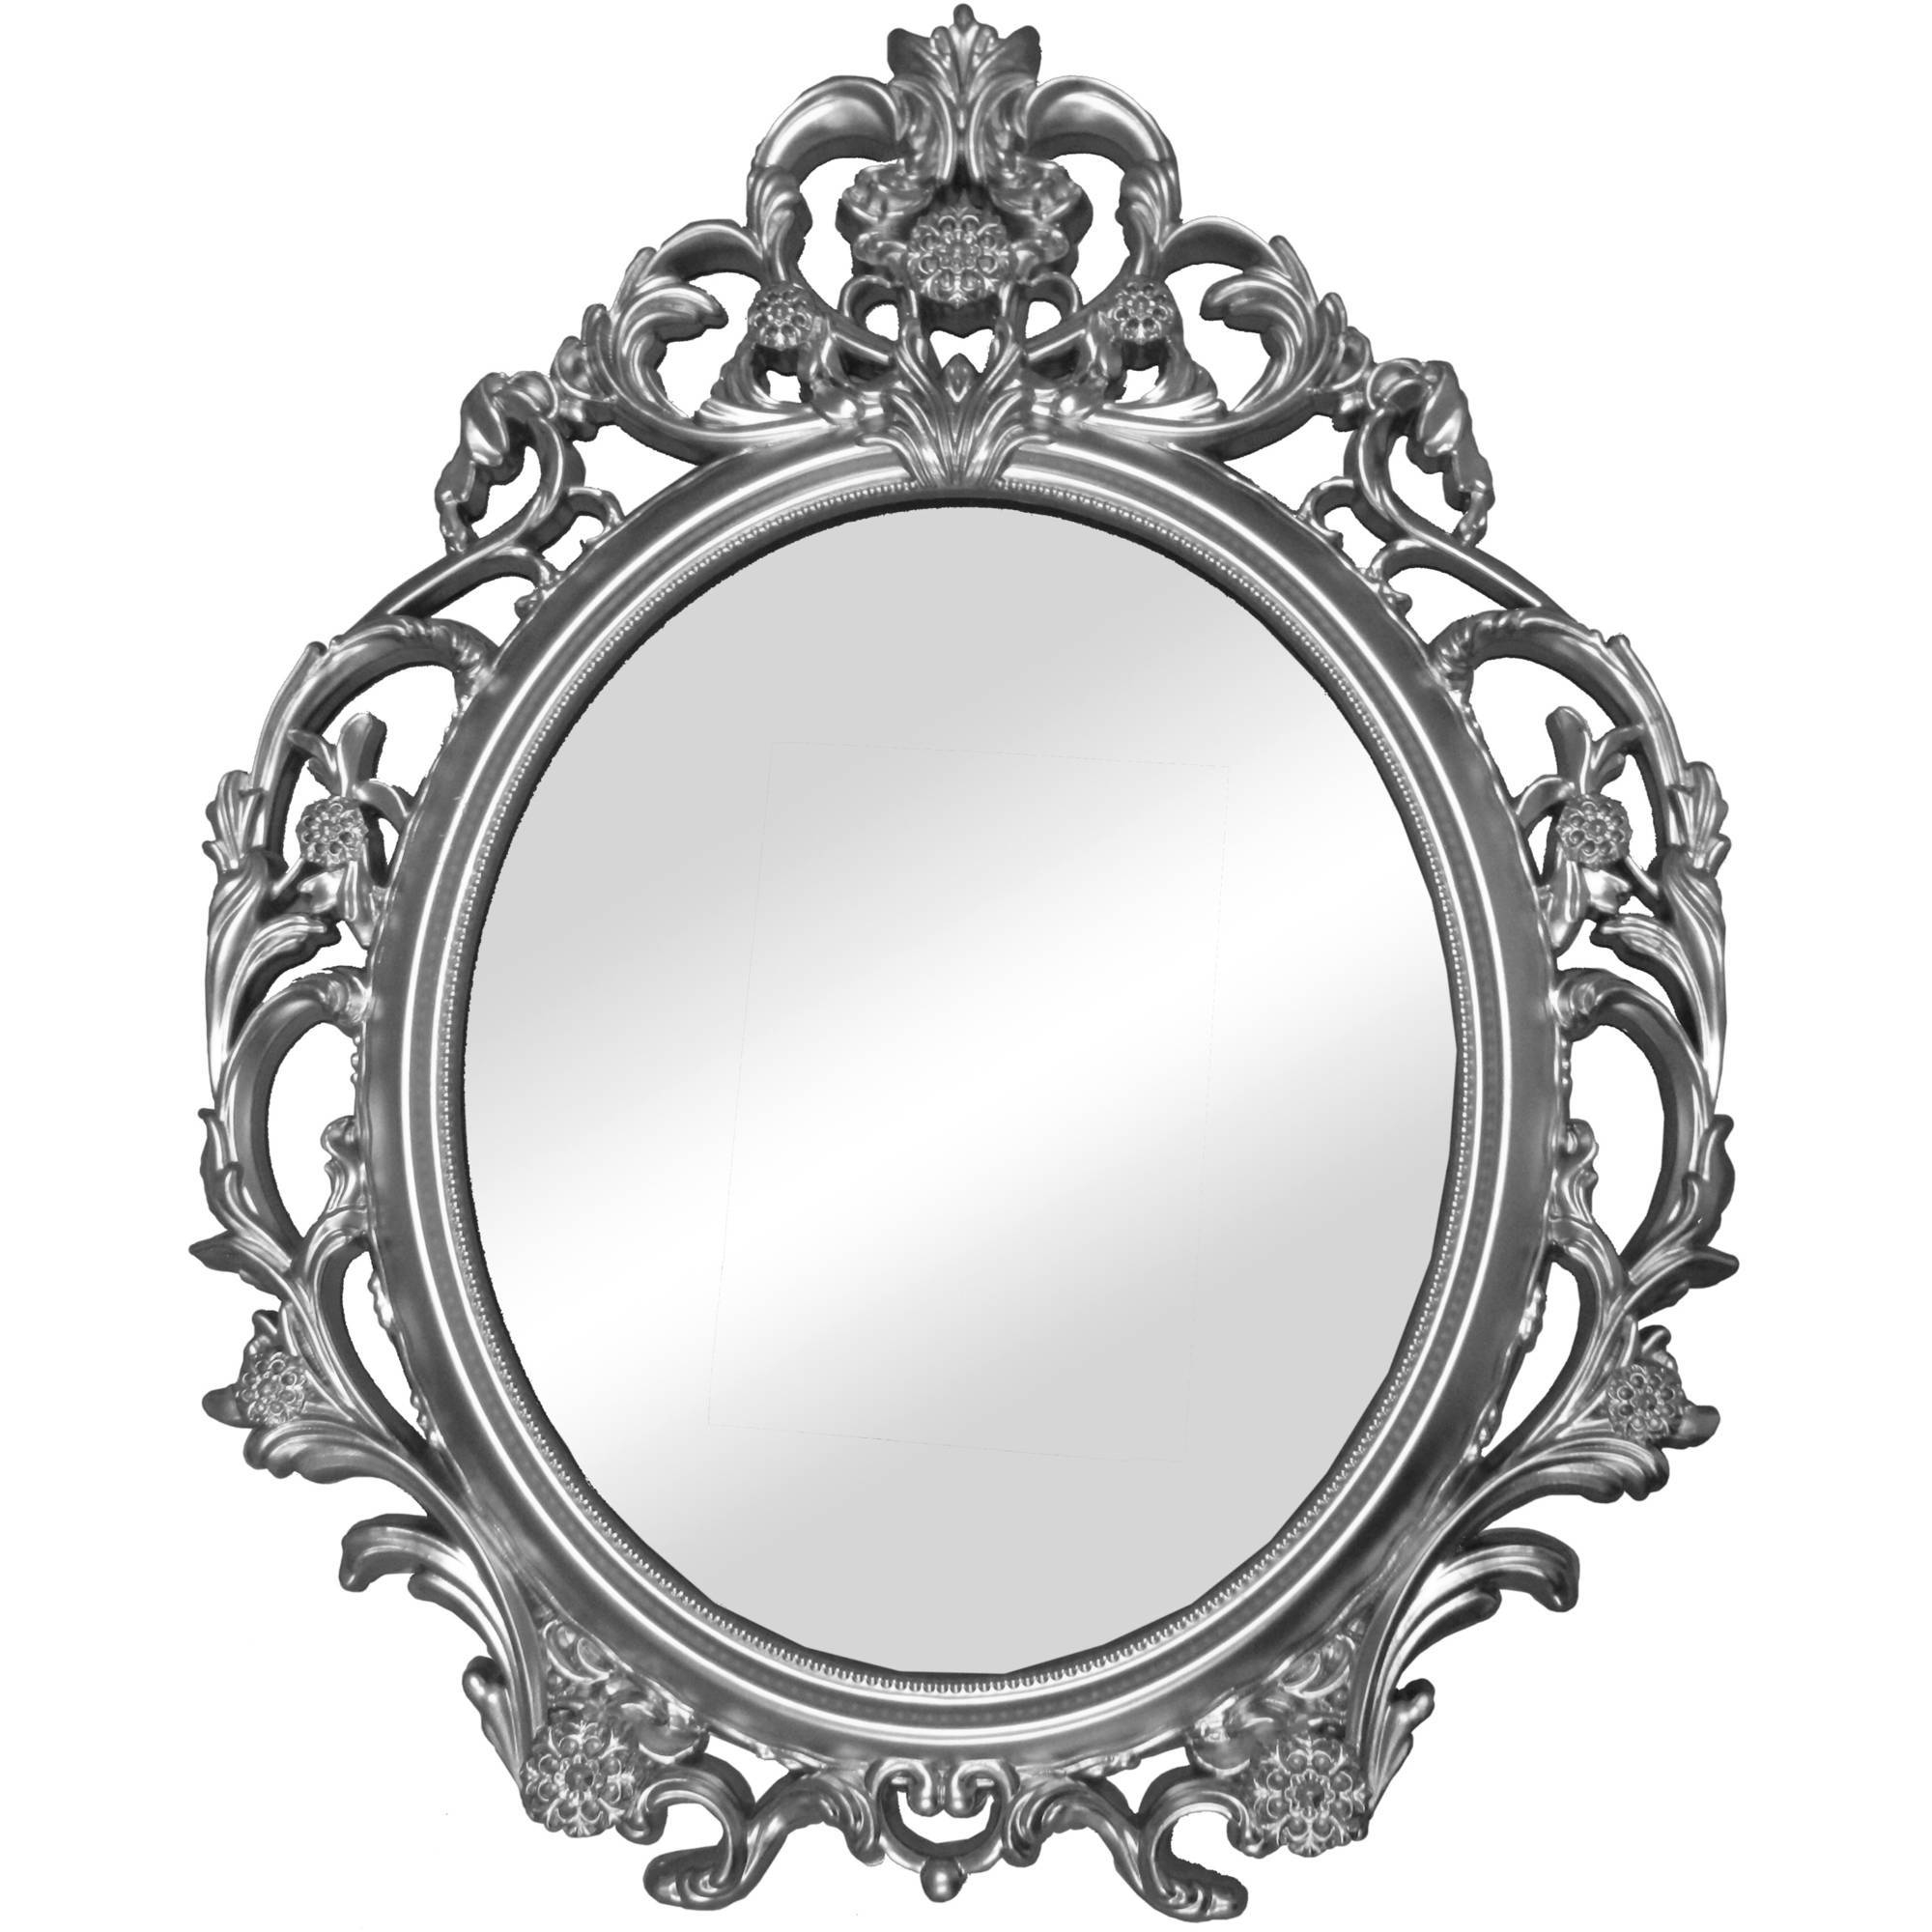 Better Homes And Gardens Baroque Wall Mirror - Walmart intended for Silver Baroque Mirrors (Image 4 of 15)